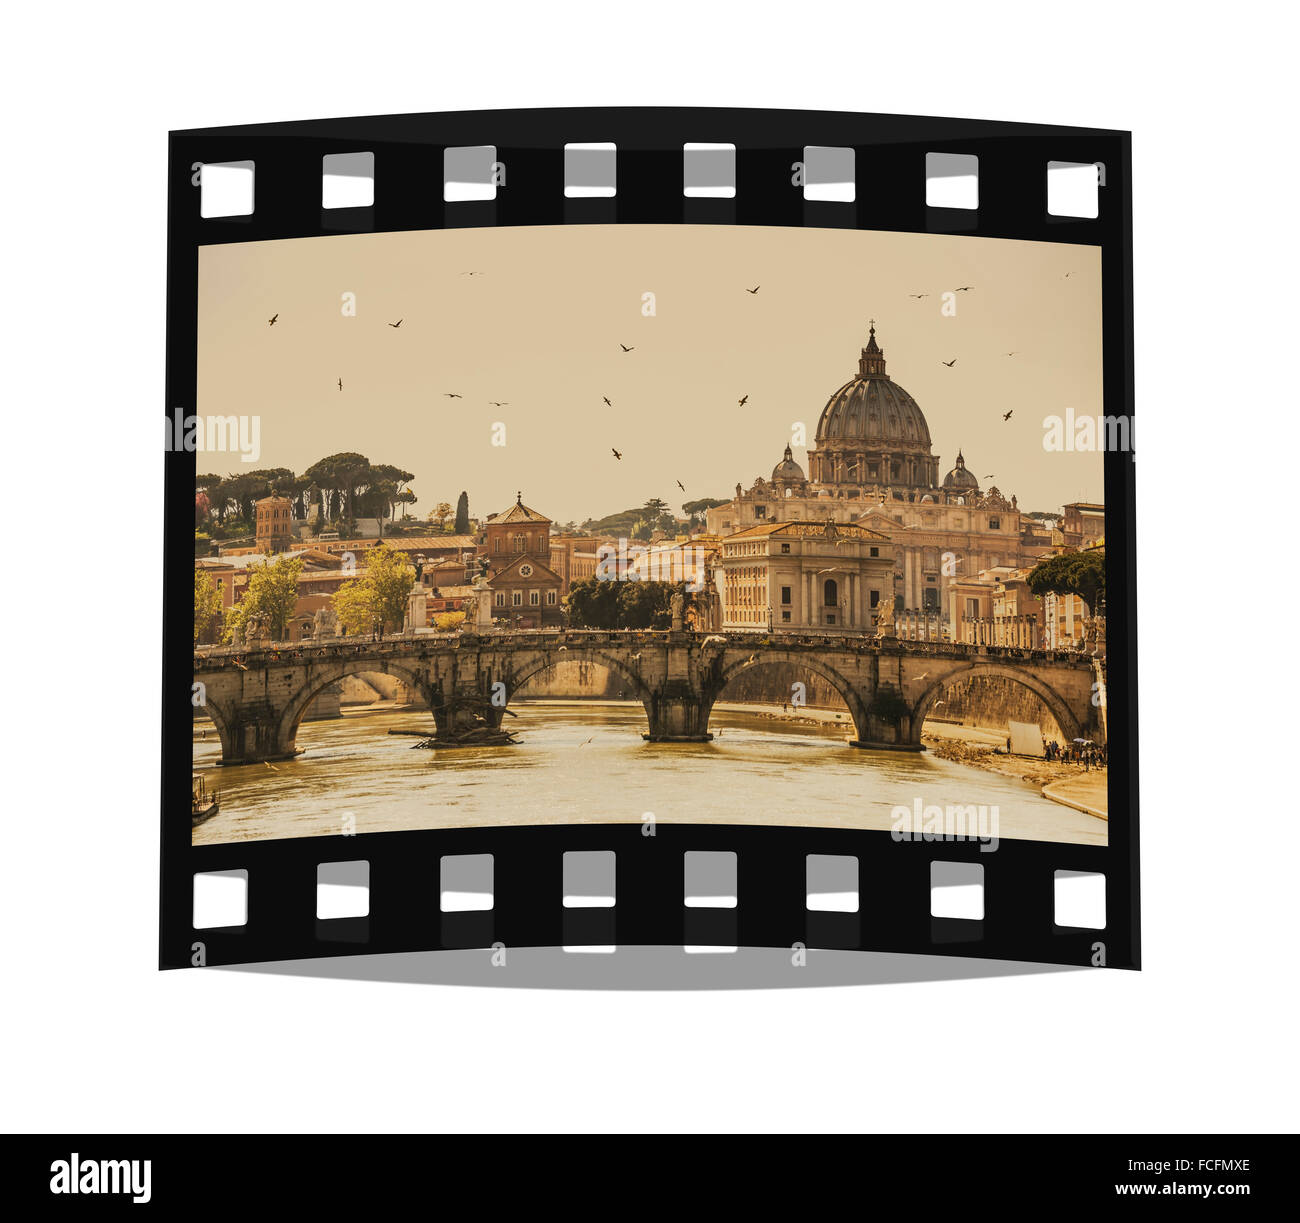 View over the Tiber river to the Vatican with the dome of St. Peter's Basilica, Vatican City State, Rome, Lazio, - Stock Image